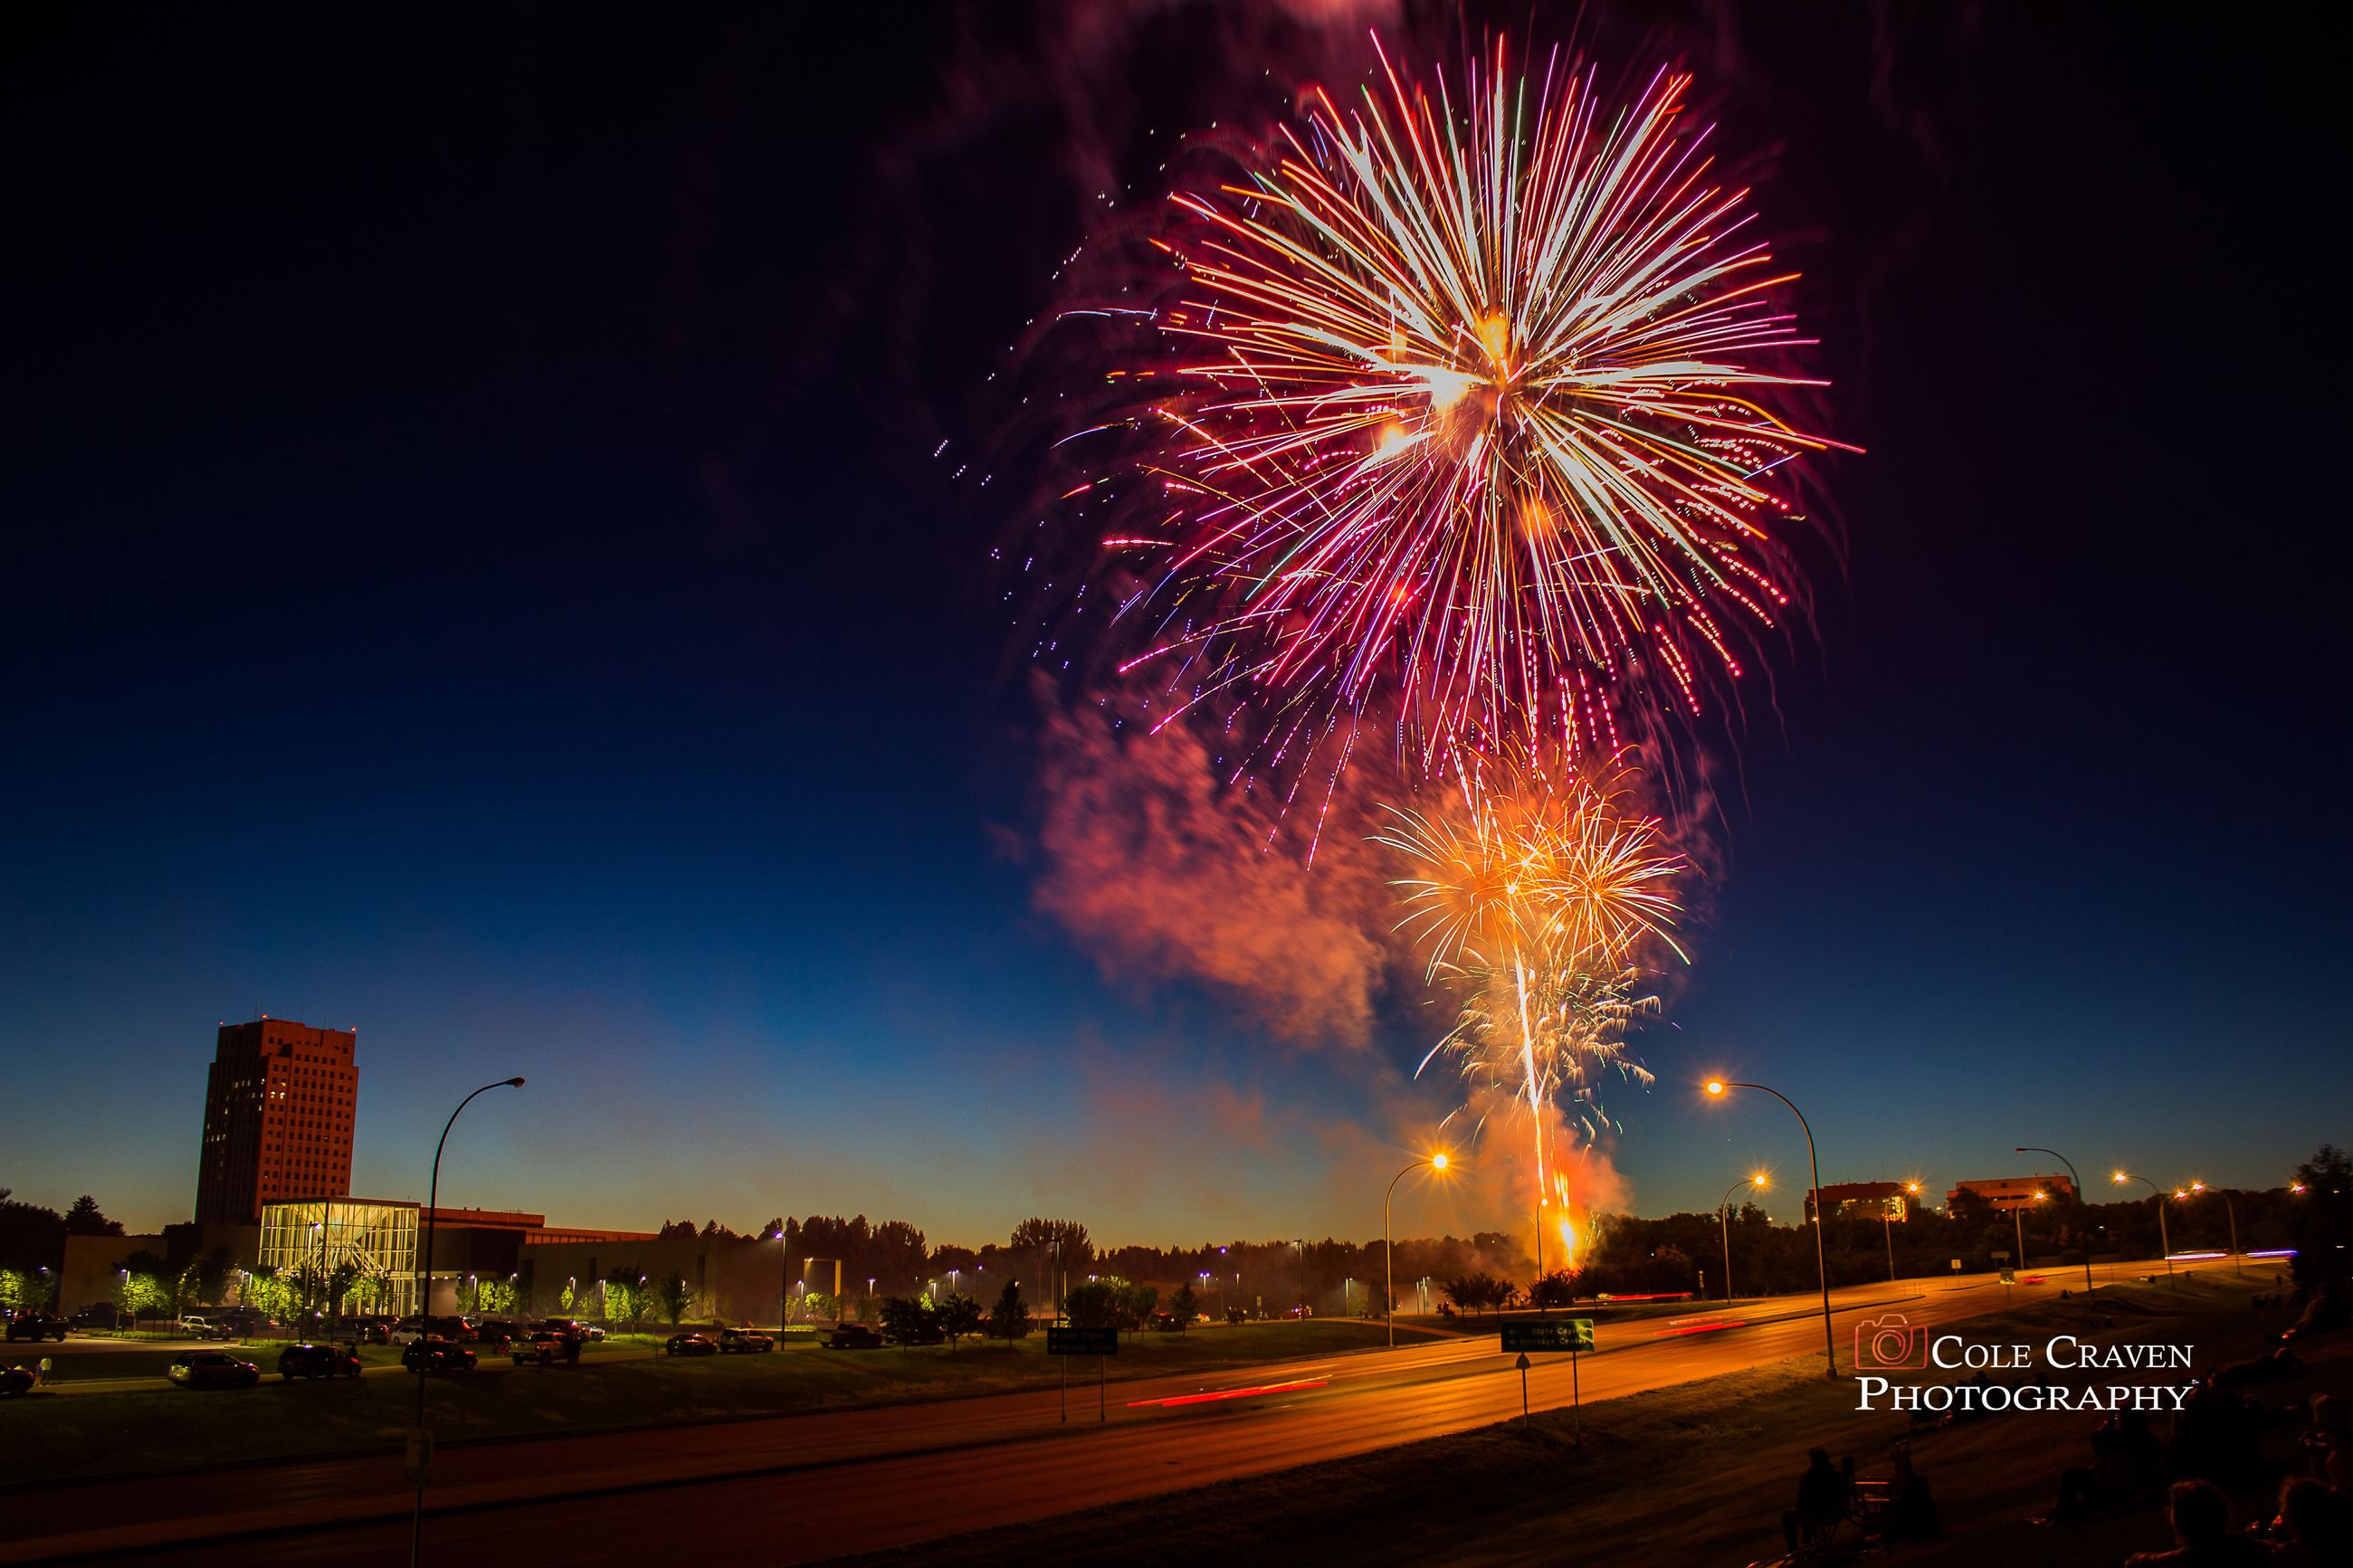 A North Dakota Capital 4th of July - Photo Credit: Cole Craven